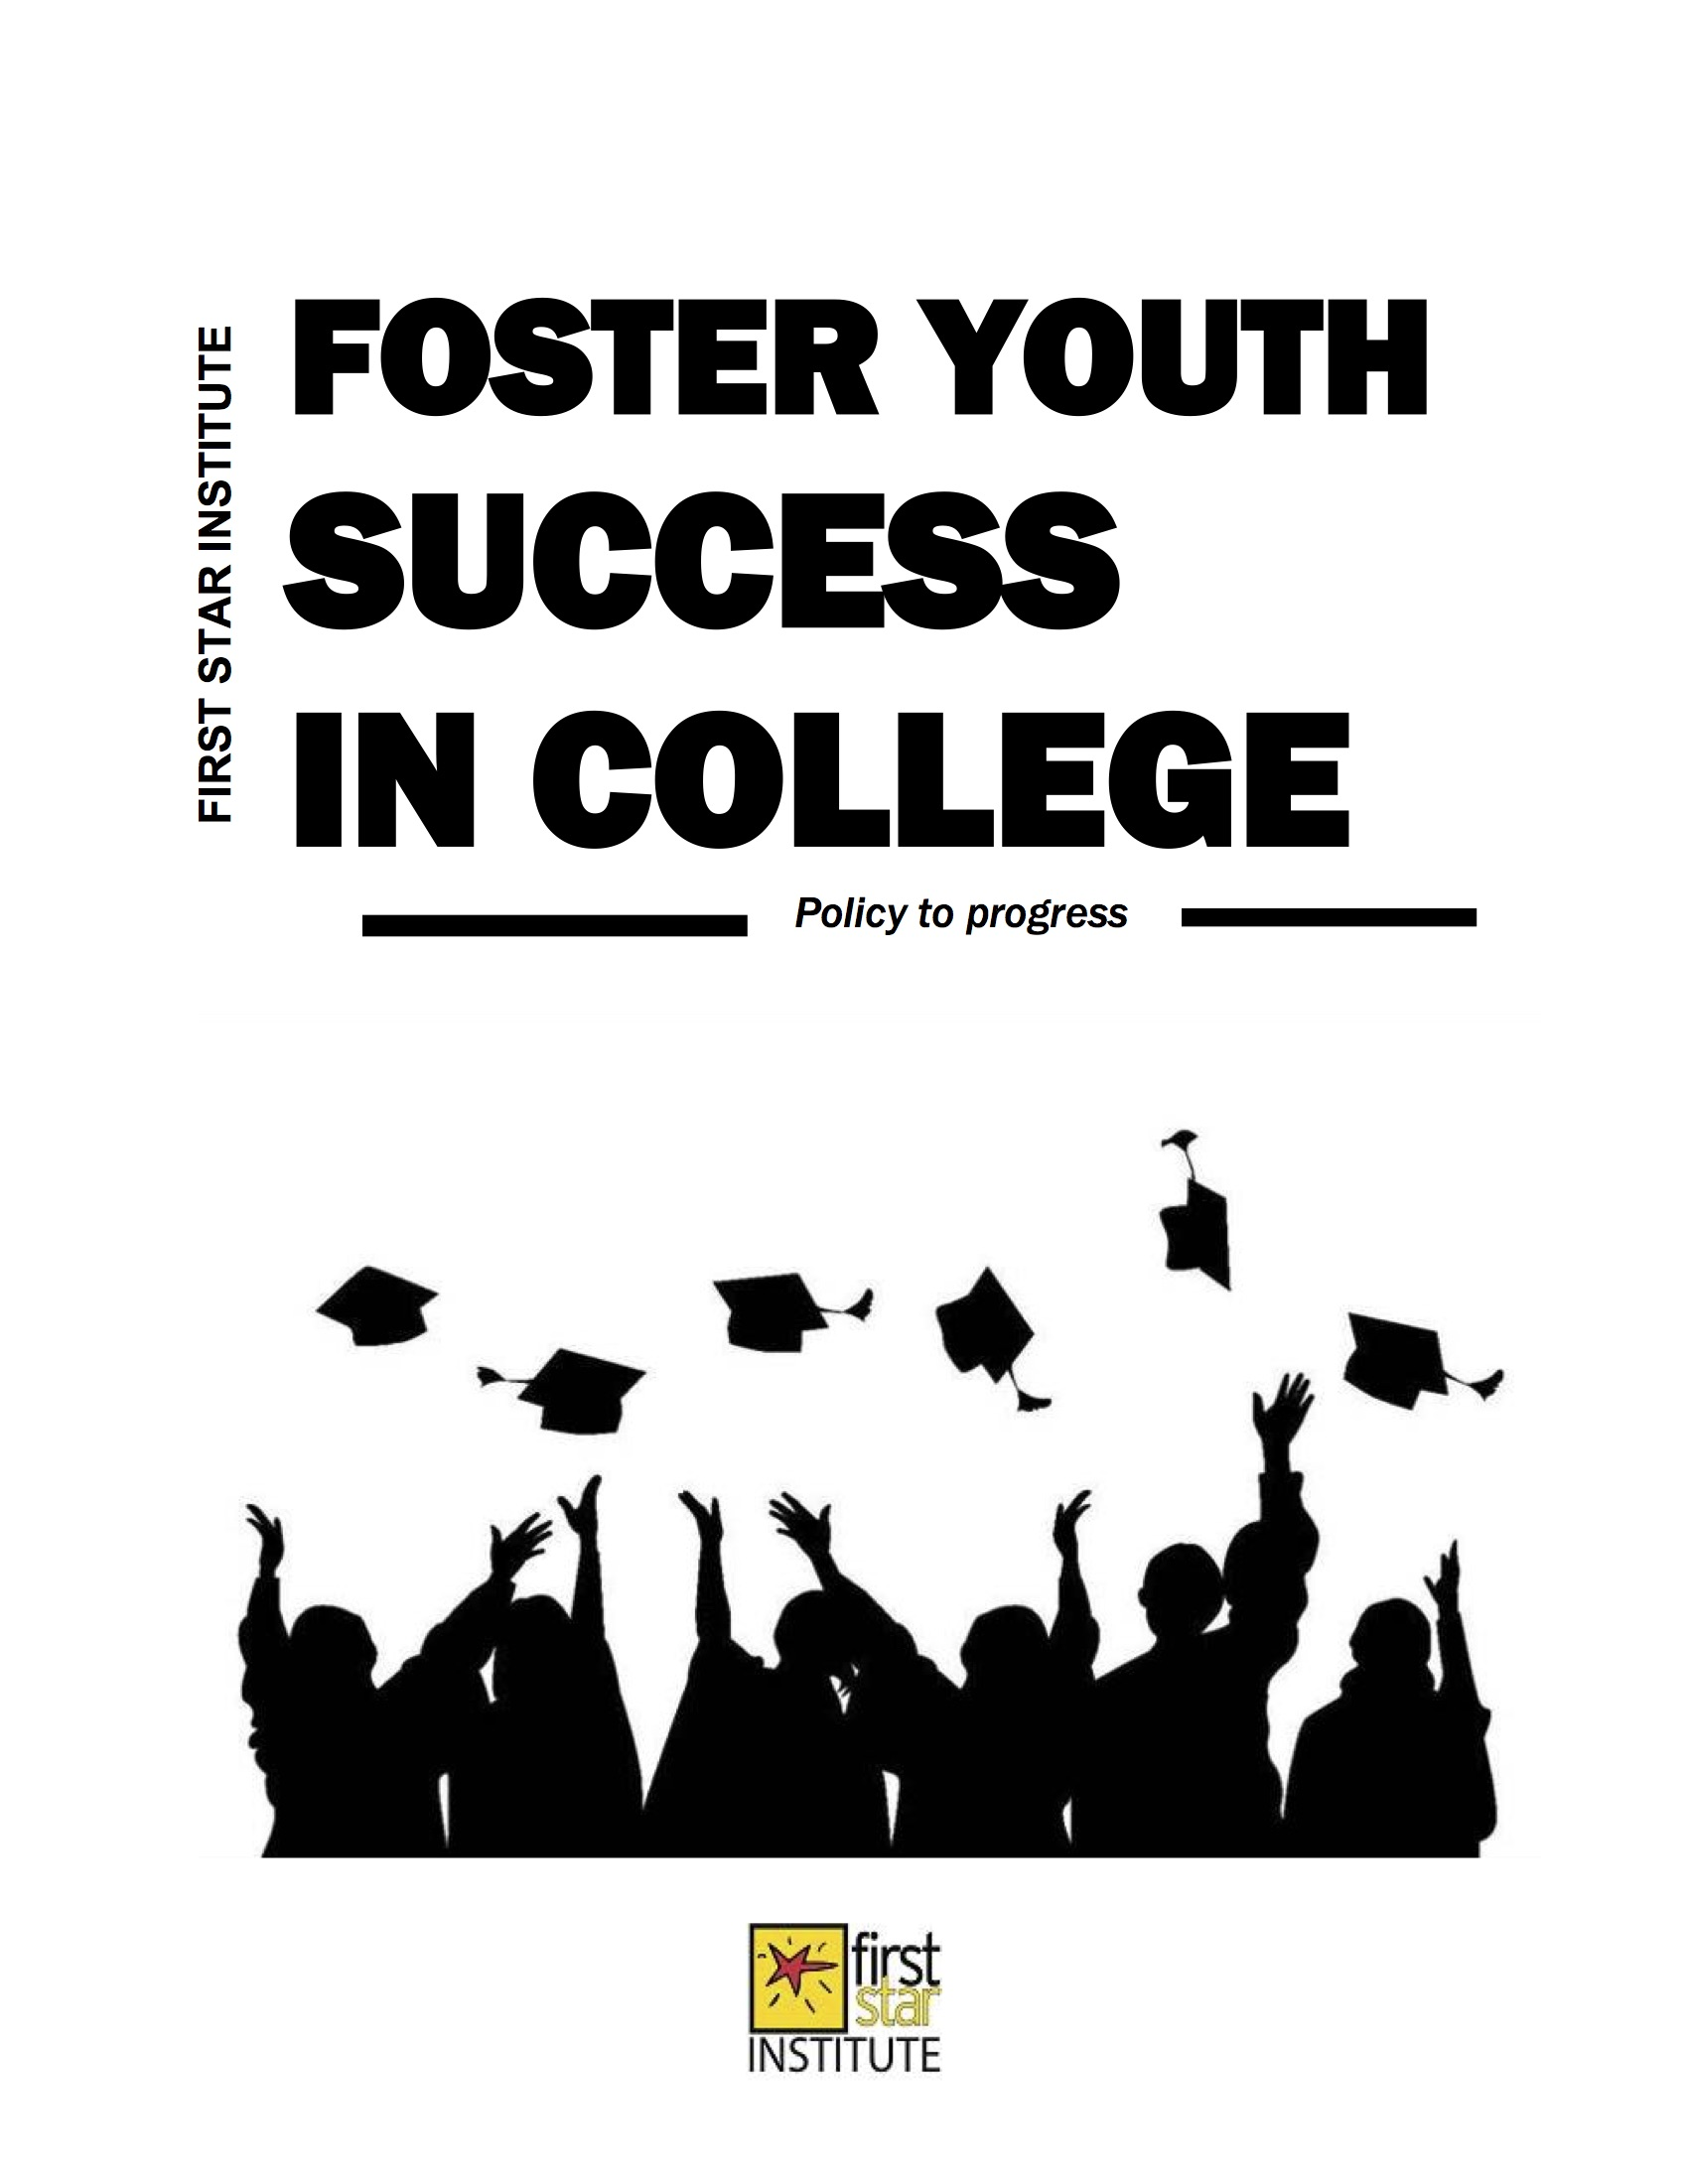 Research and Reports on Child Welfare and Foster Care | First Star